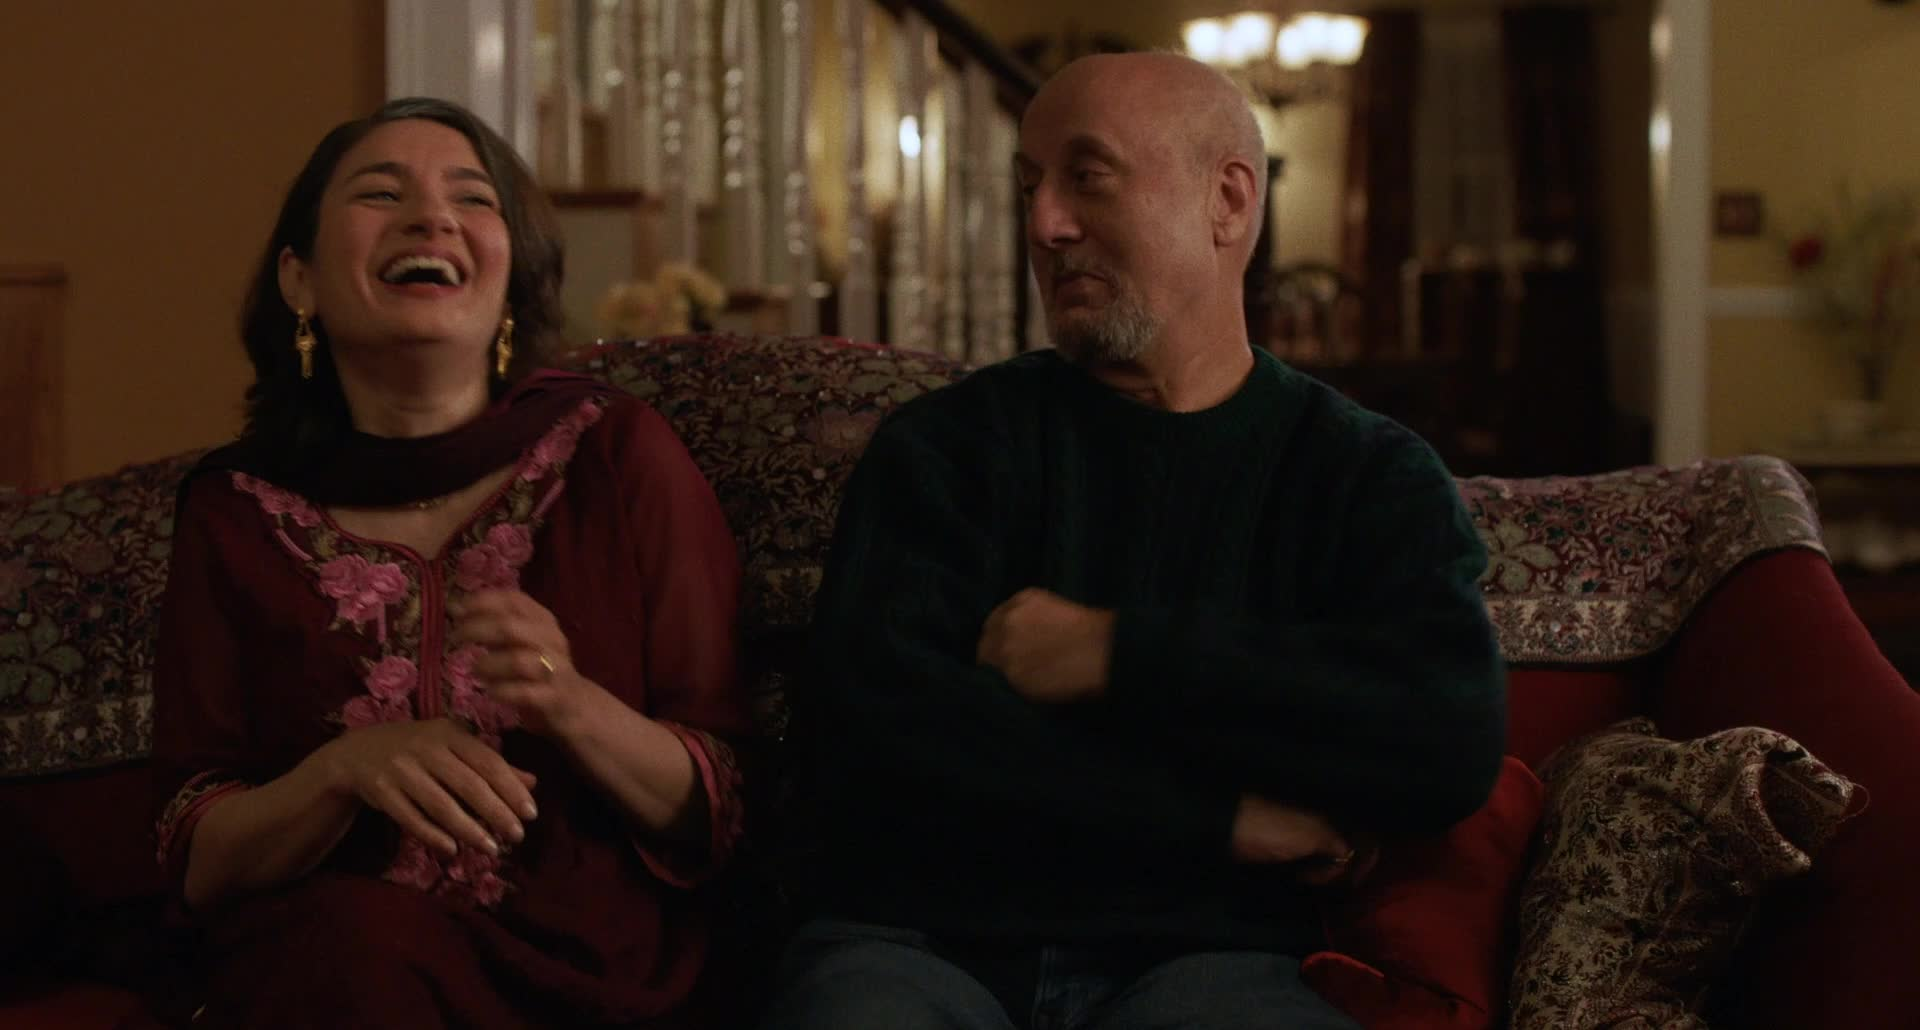 Lionsgate, Romance, The Big Sick, TheBigSick, comedy, haha, laughing, lionsgate, movie, romance, romantic, the big sick, thebigsick, couch giggles GIFs